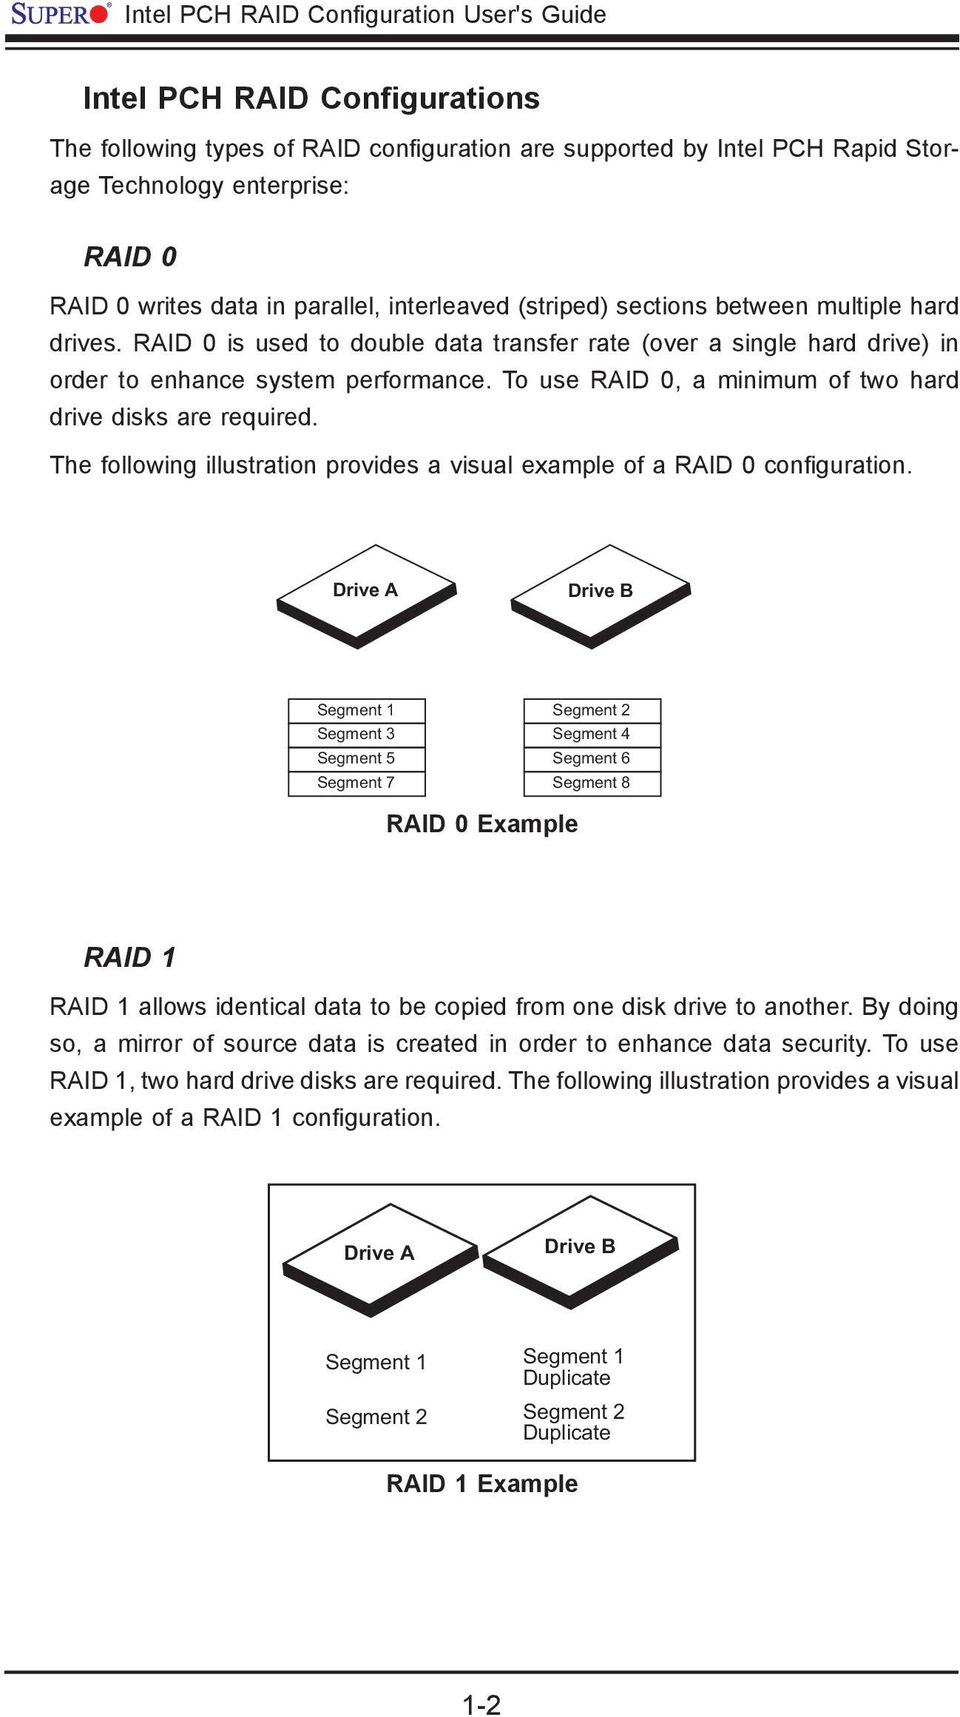 To use RAID 0, a minimum of two hard drive disks are required. The following illustration provides a visual example of a RAID 0 configuration.